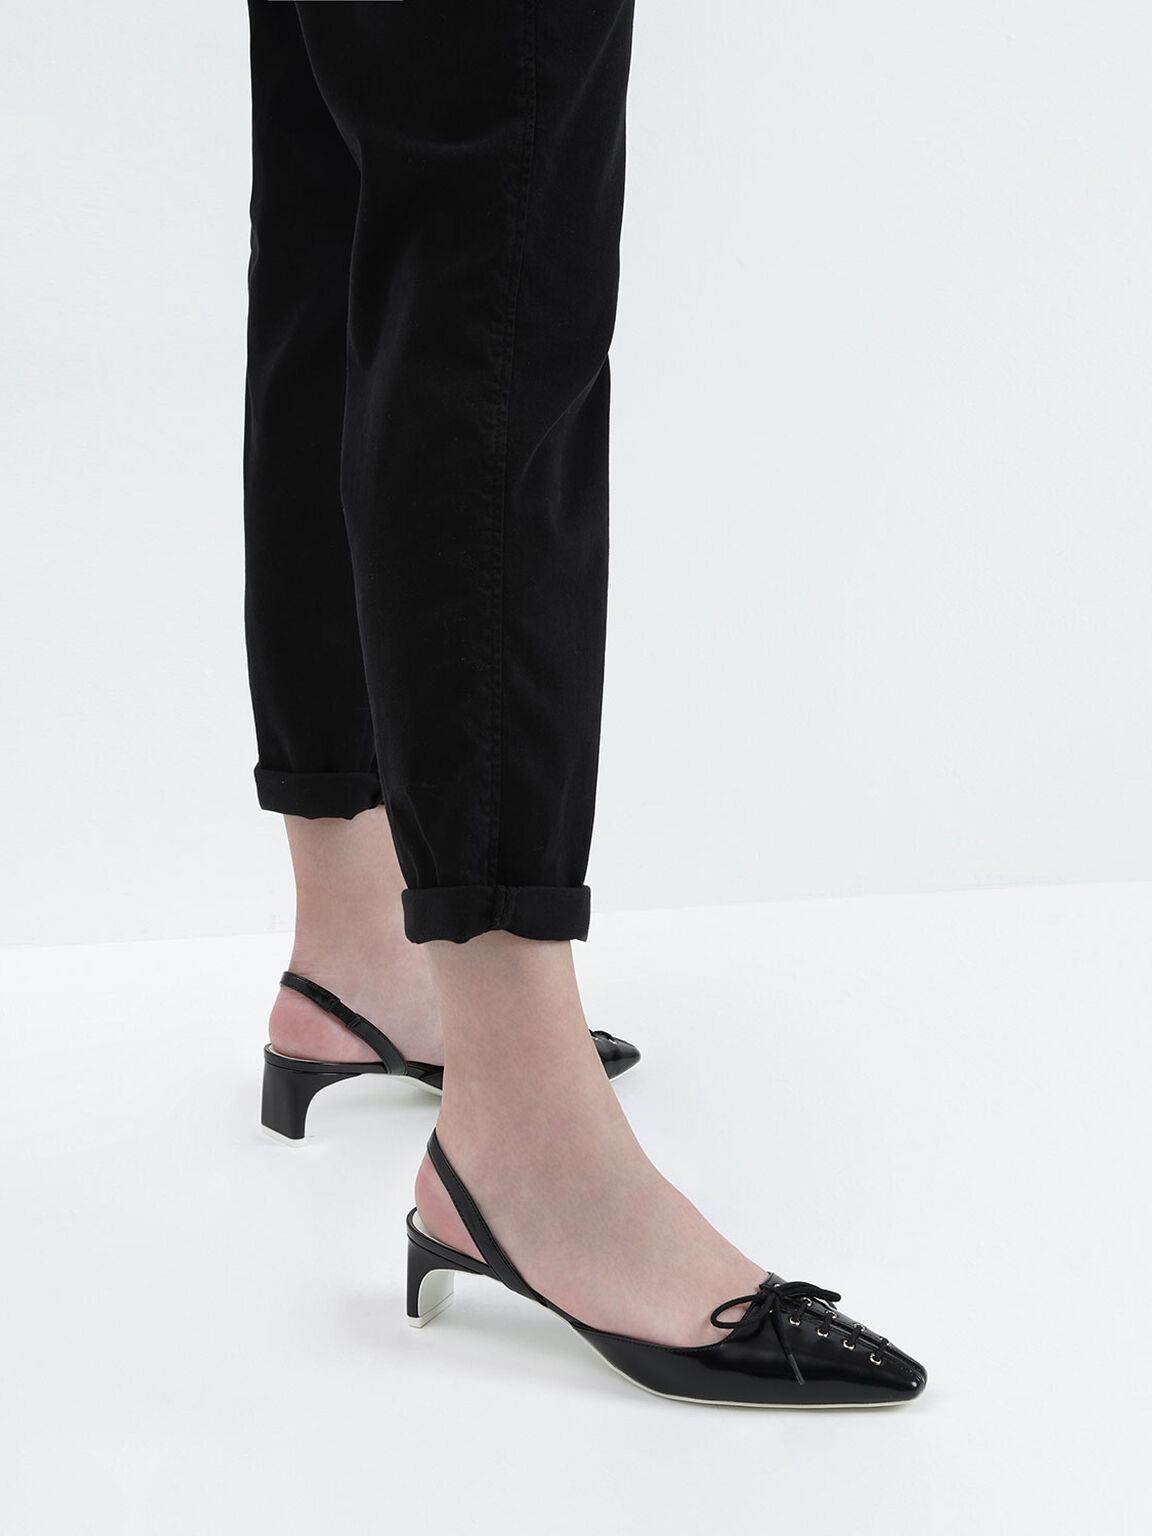 Lace-Up Slingback Heels, Black, hi-res